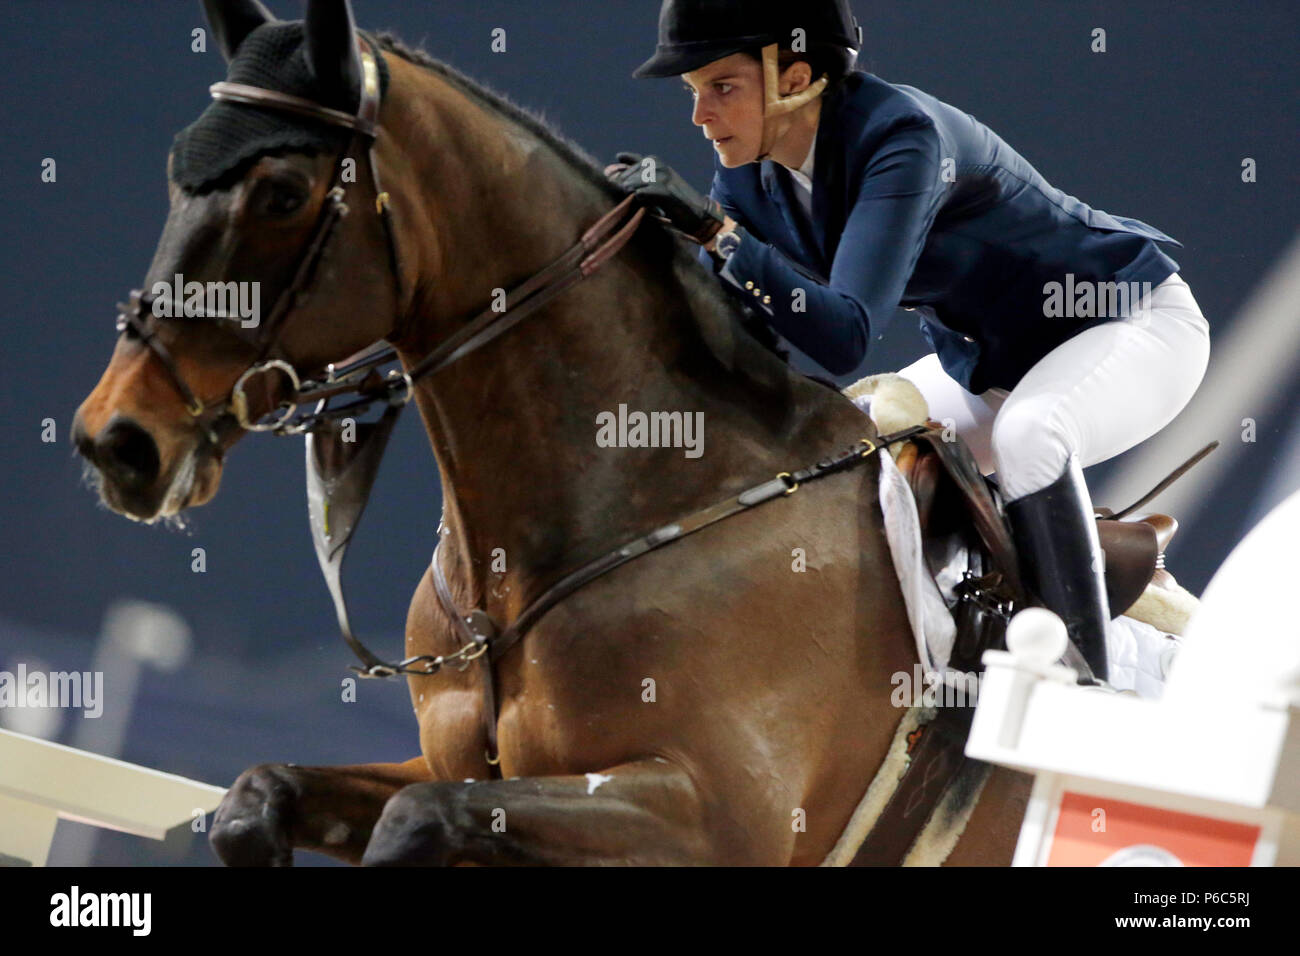 Doha, show jumper Athina Onassis in action - Stock Image